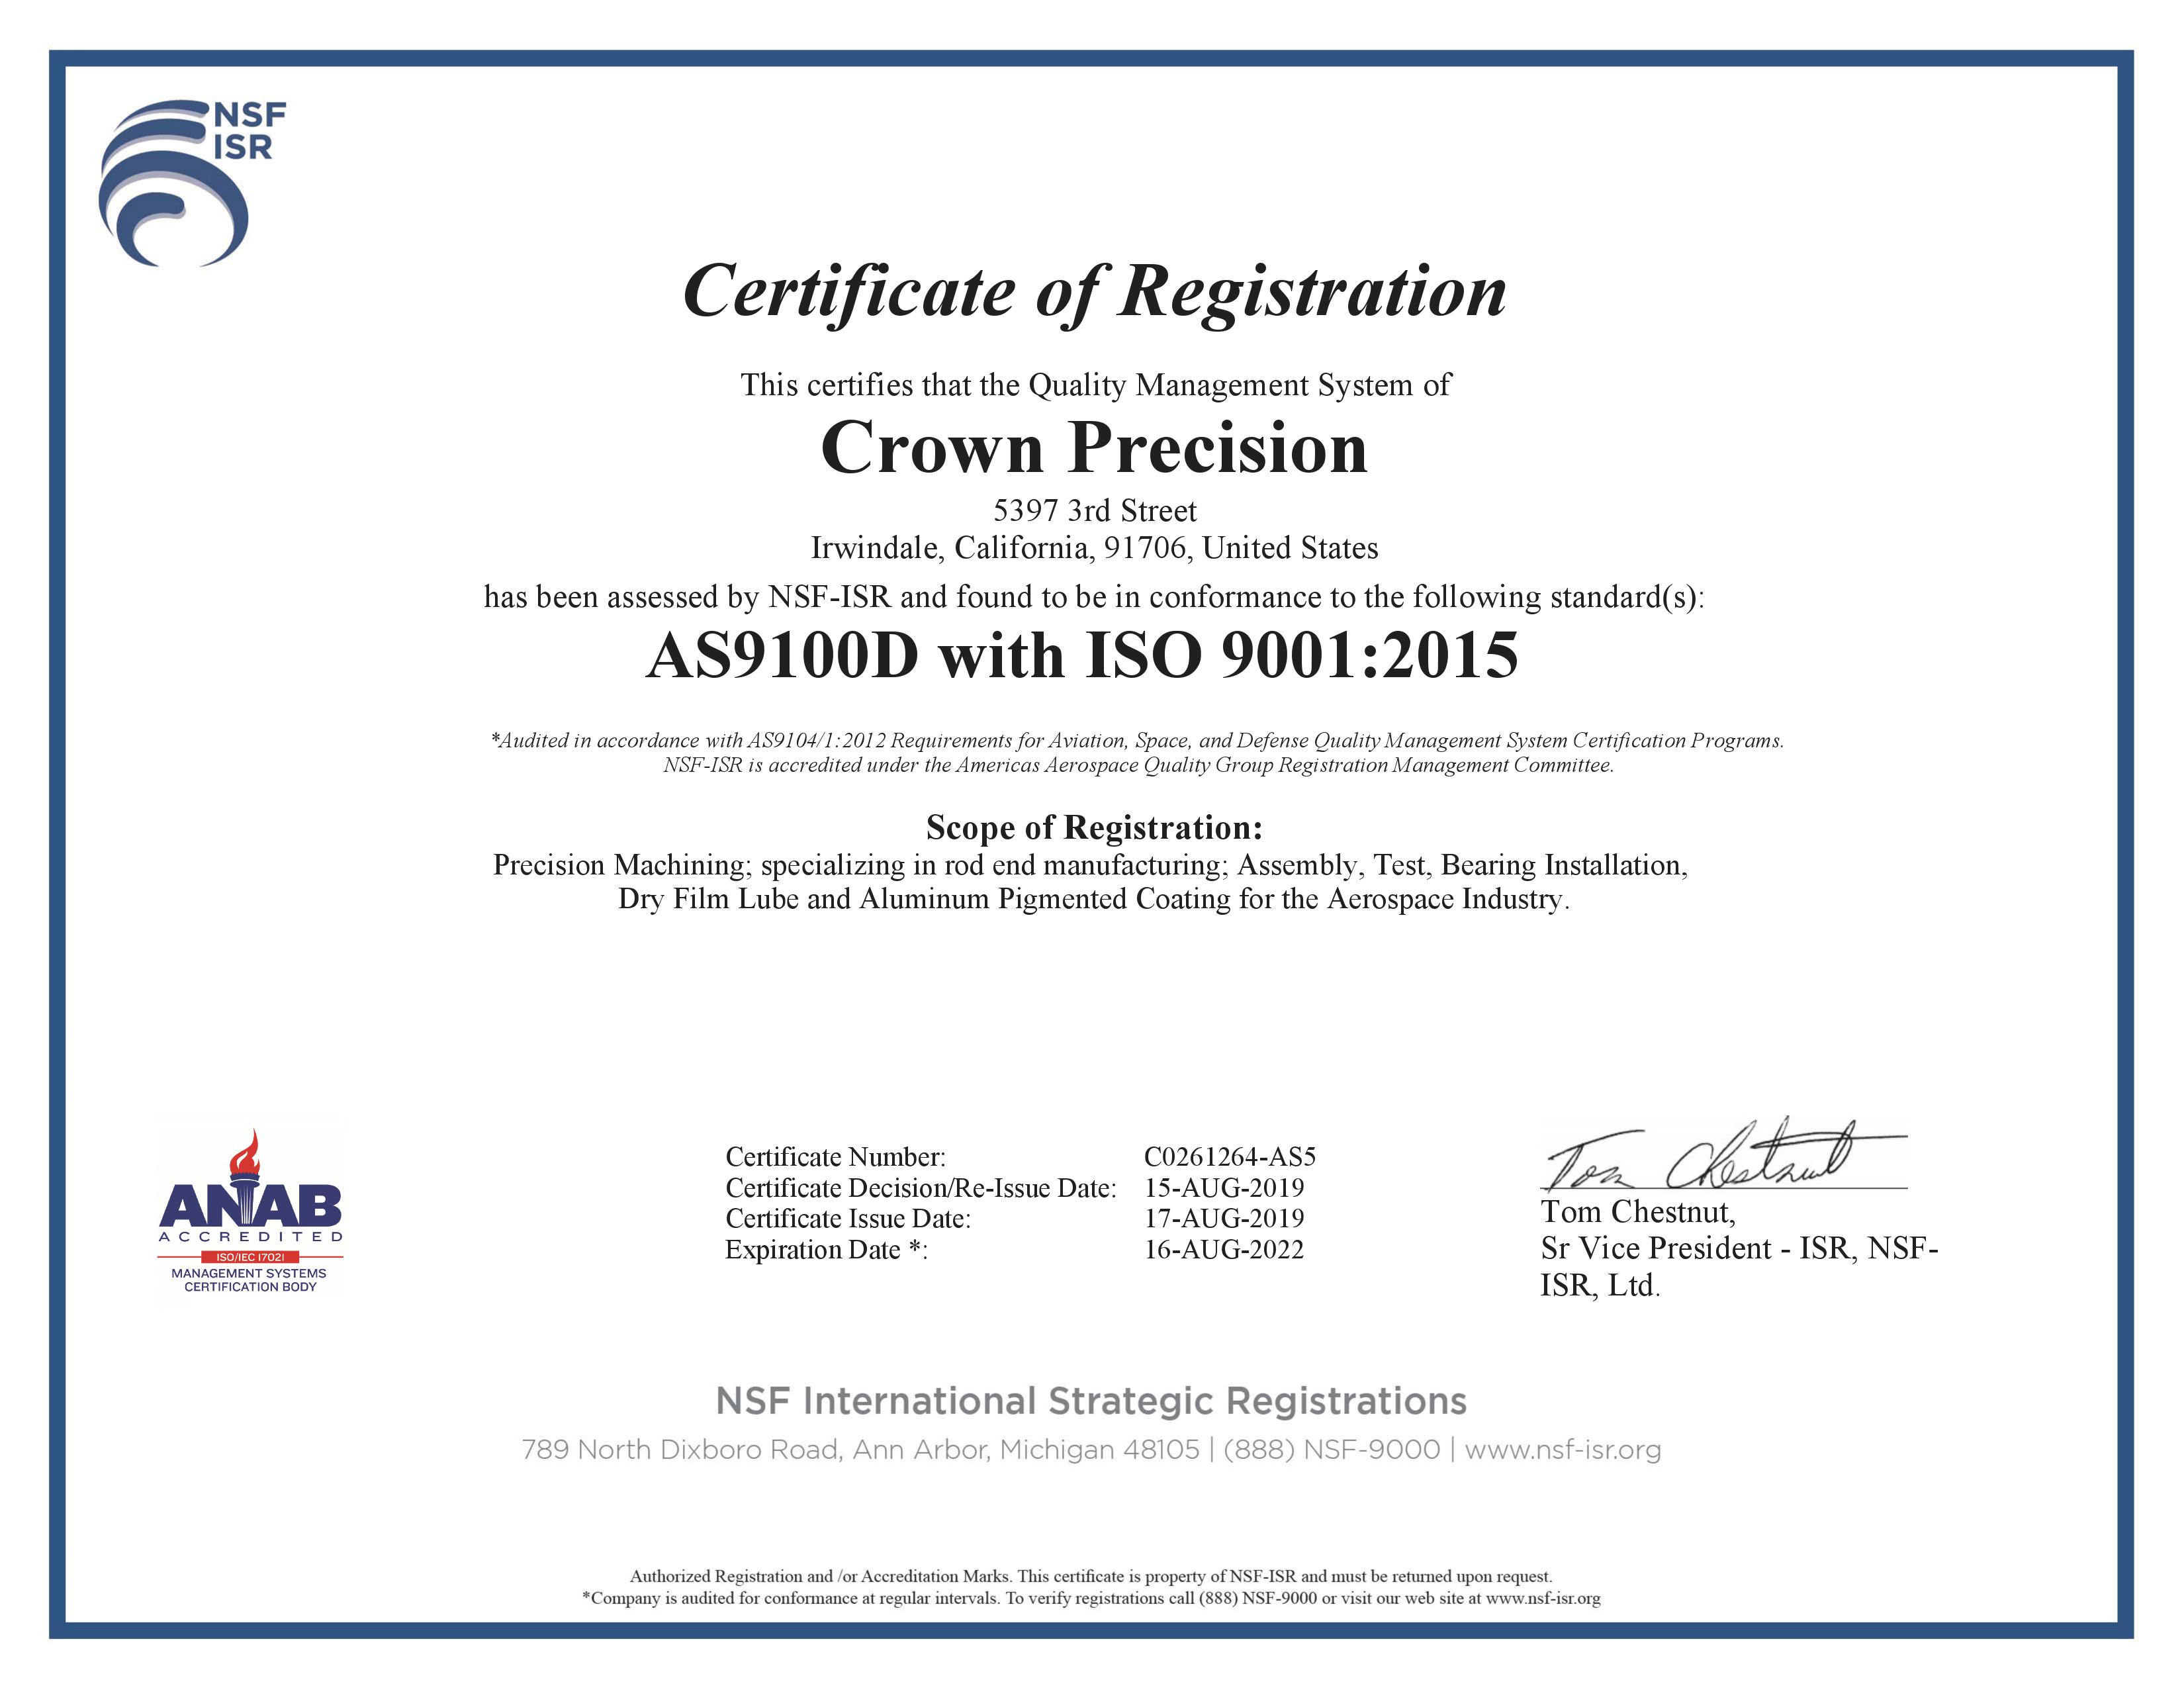 AS9100D with ISO 9001:2015 Certificate for Crown Precision of Irwindale, California